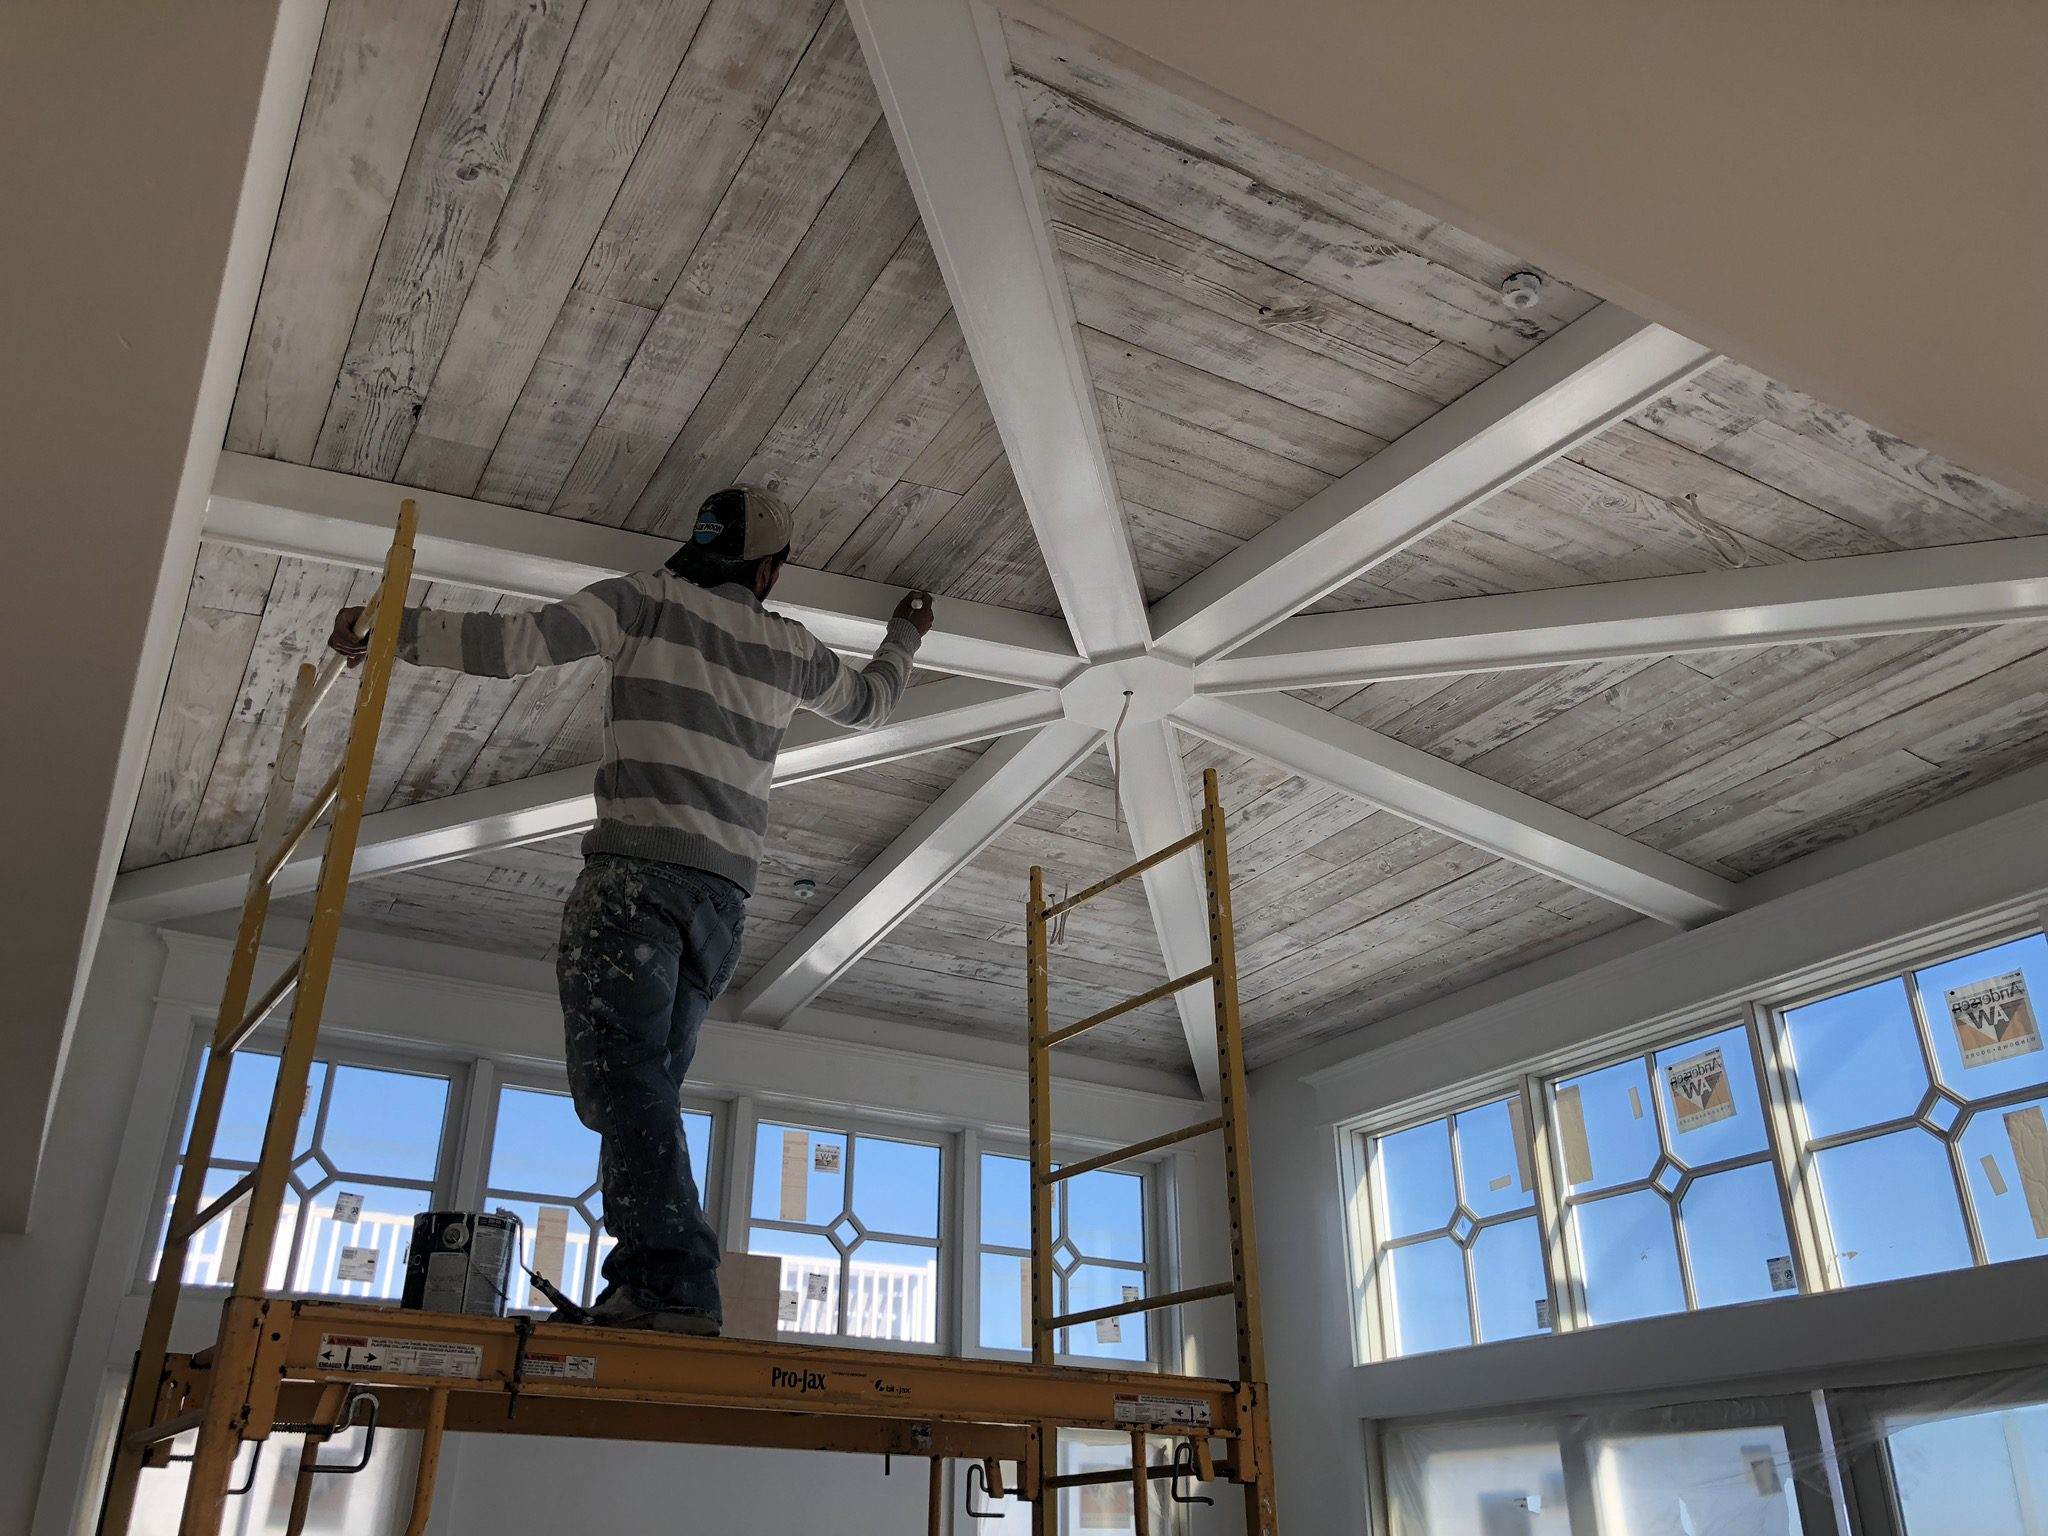 Man working on ceiling construction